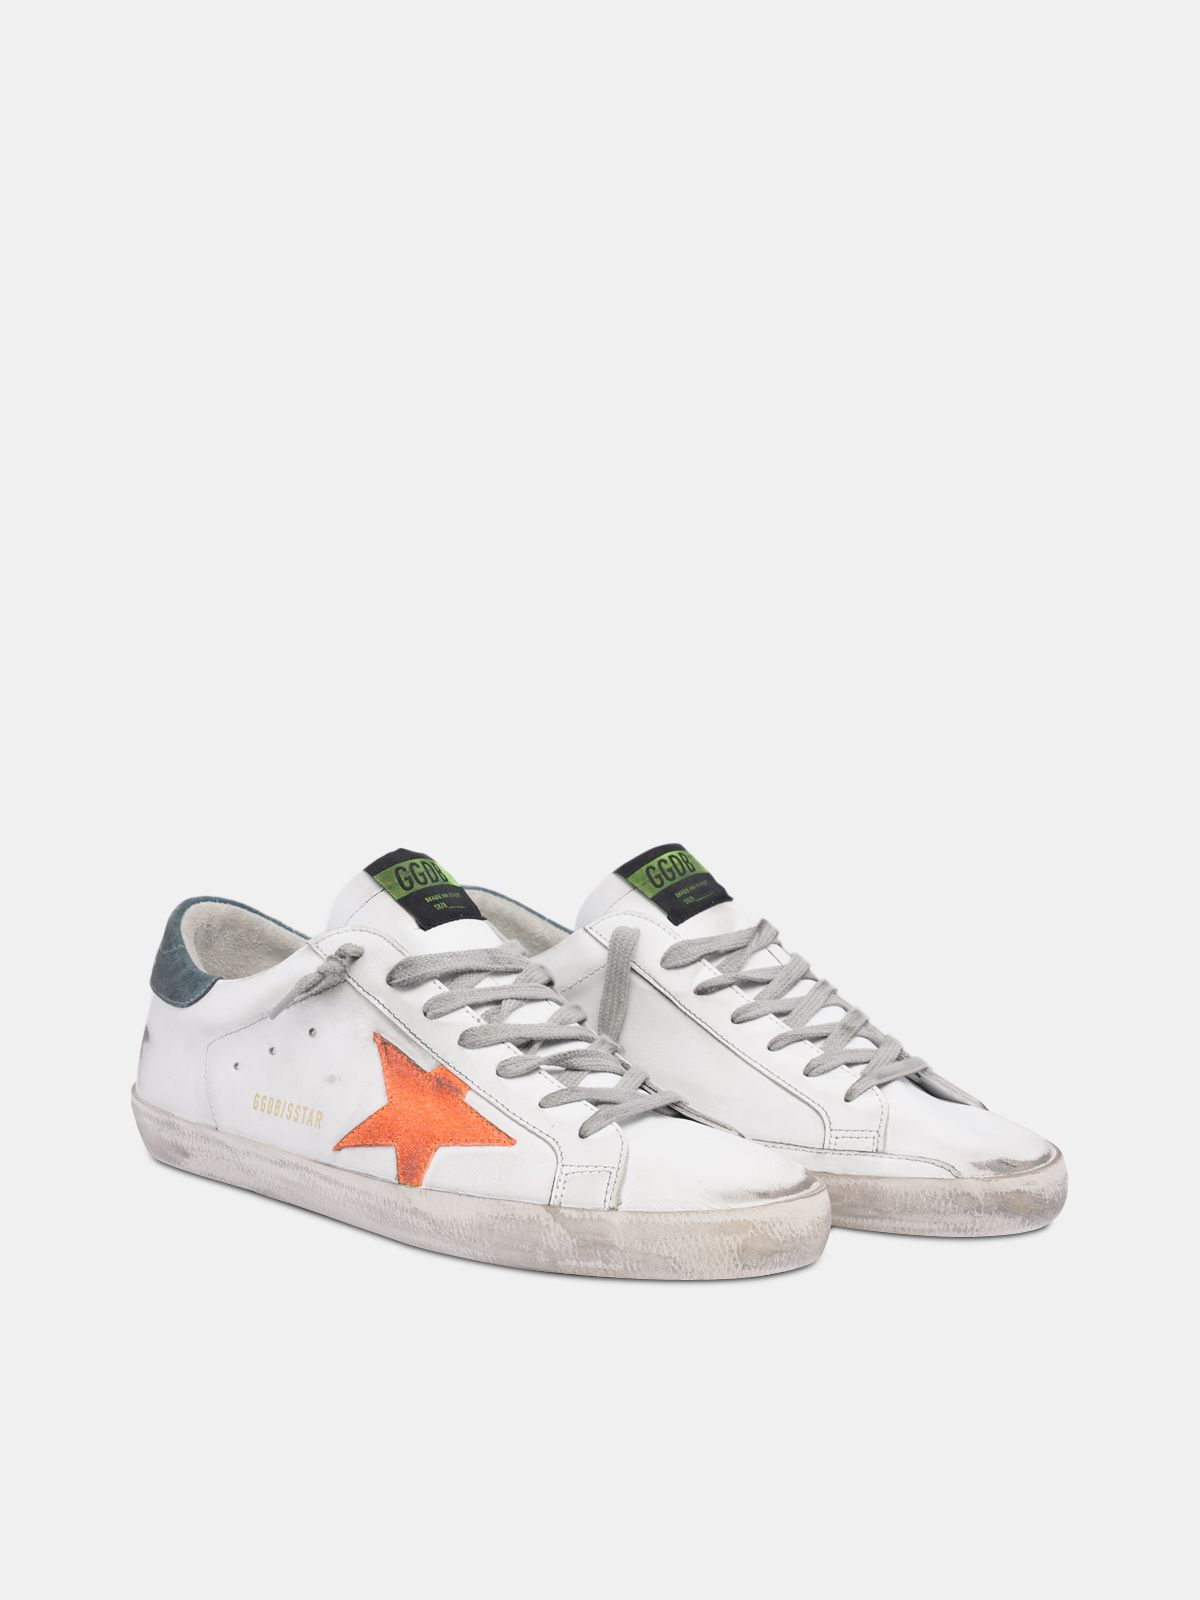 Golden Goose - White Super-Star sneakers with orange star in